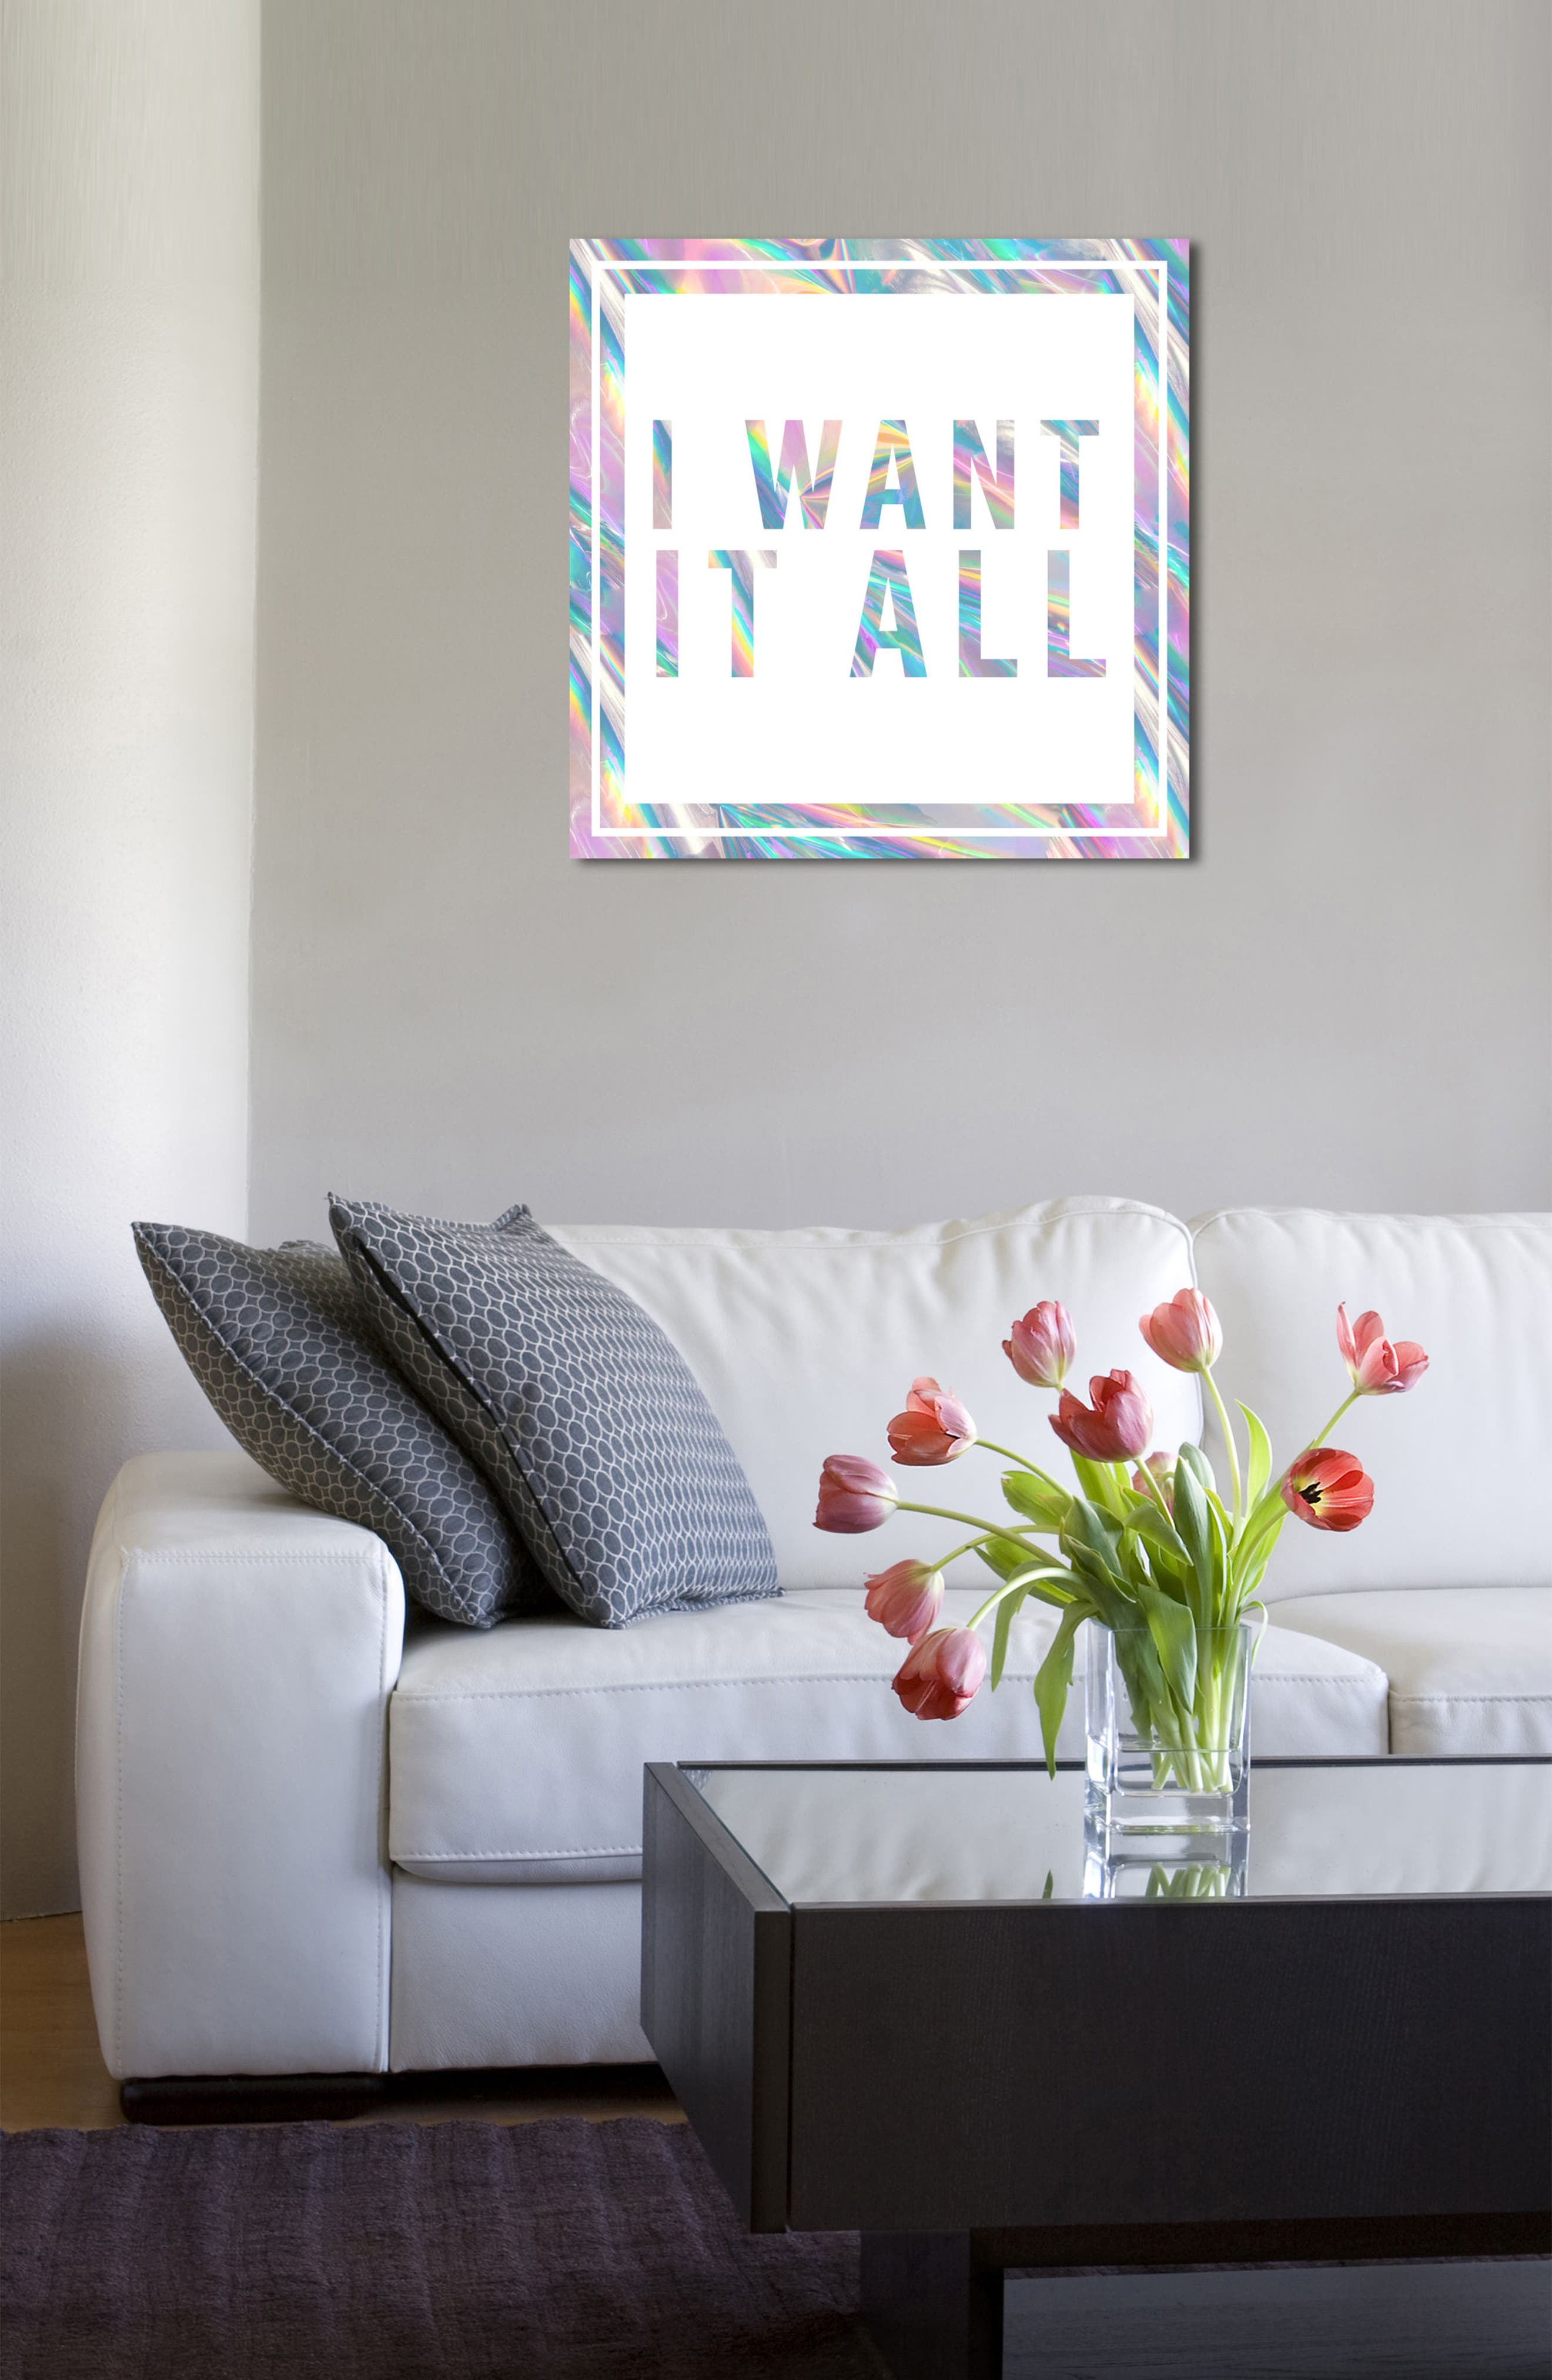 I Want It All Canvas Wall Art,                             Alternate thumbnail 4, color,                             White